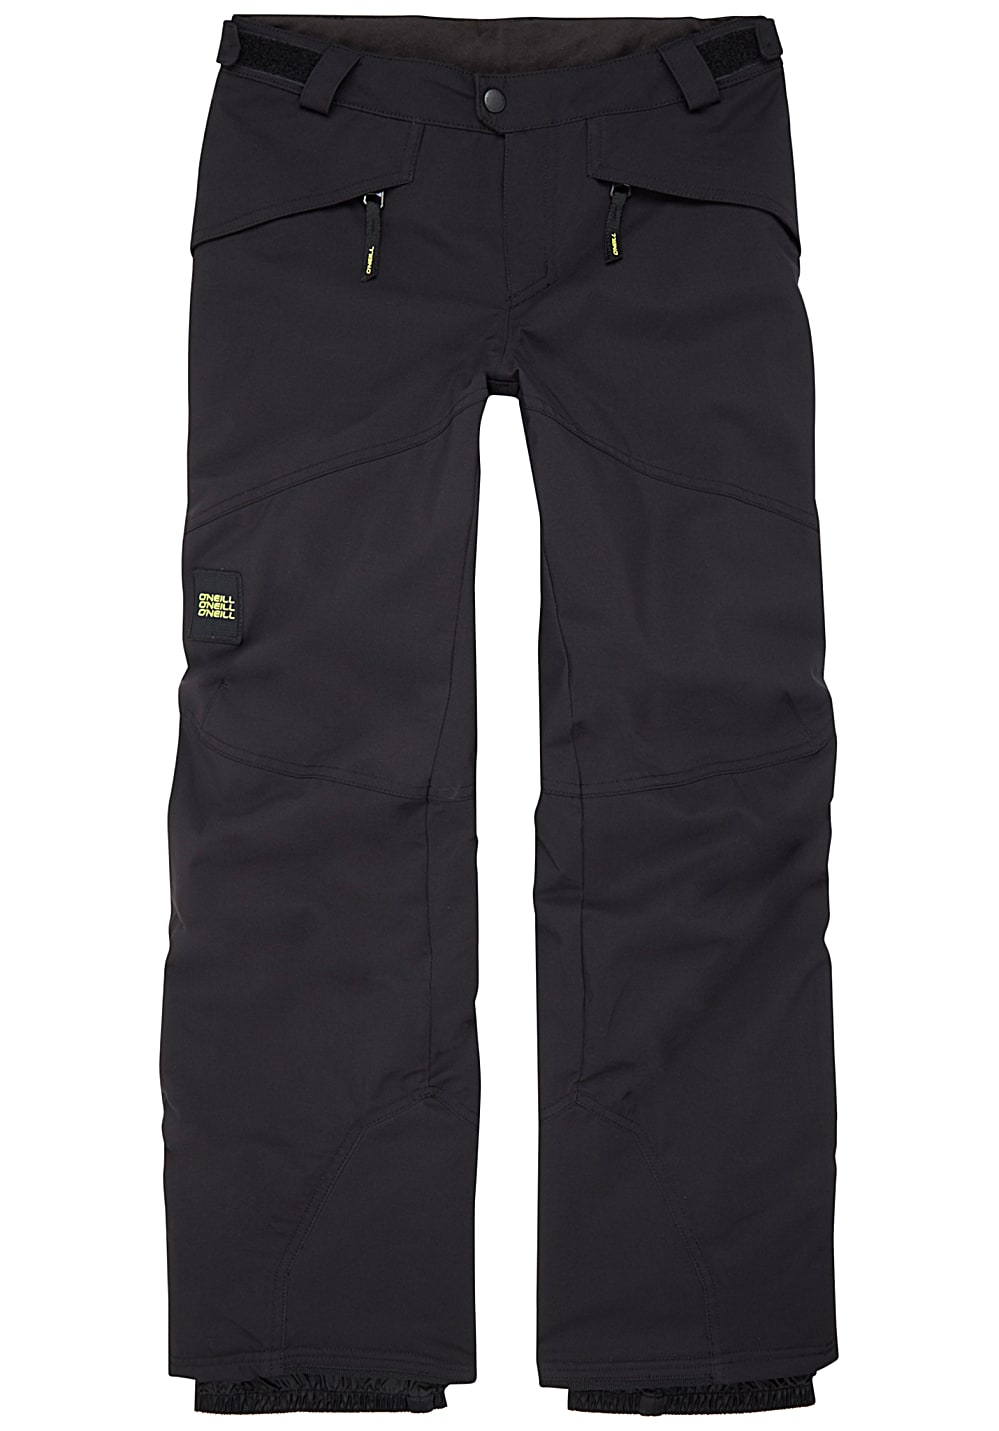 Boysregenwinter - O'Neill Anvil Snowboardhose für Jungs Schwarz - Onlineshop Planet Sports